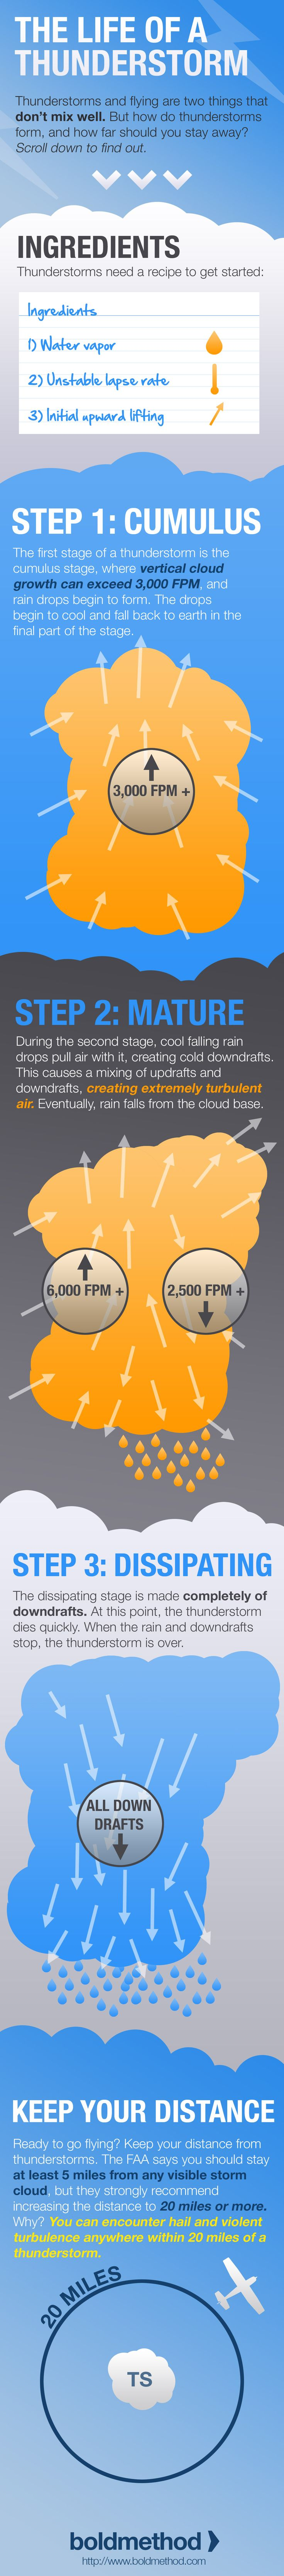 How Thunderstorms Form, And What A Safe Distance Is For Your Plane